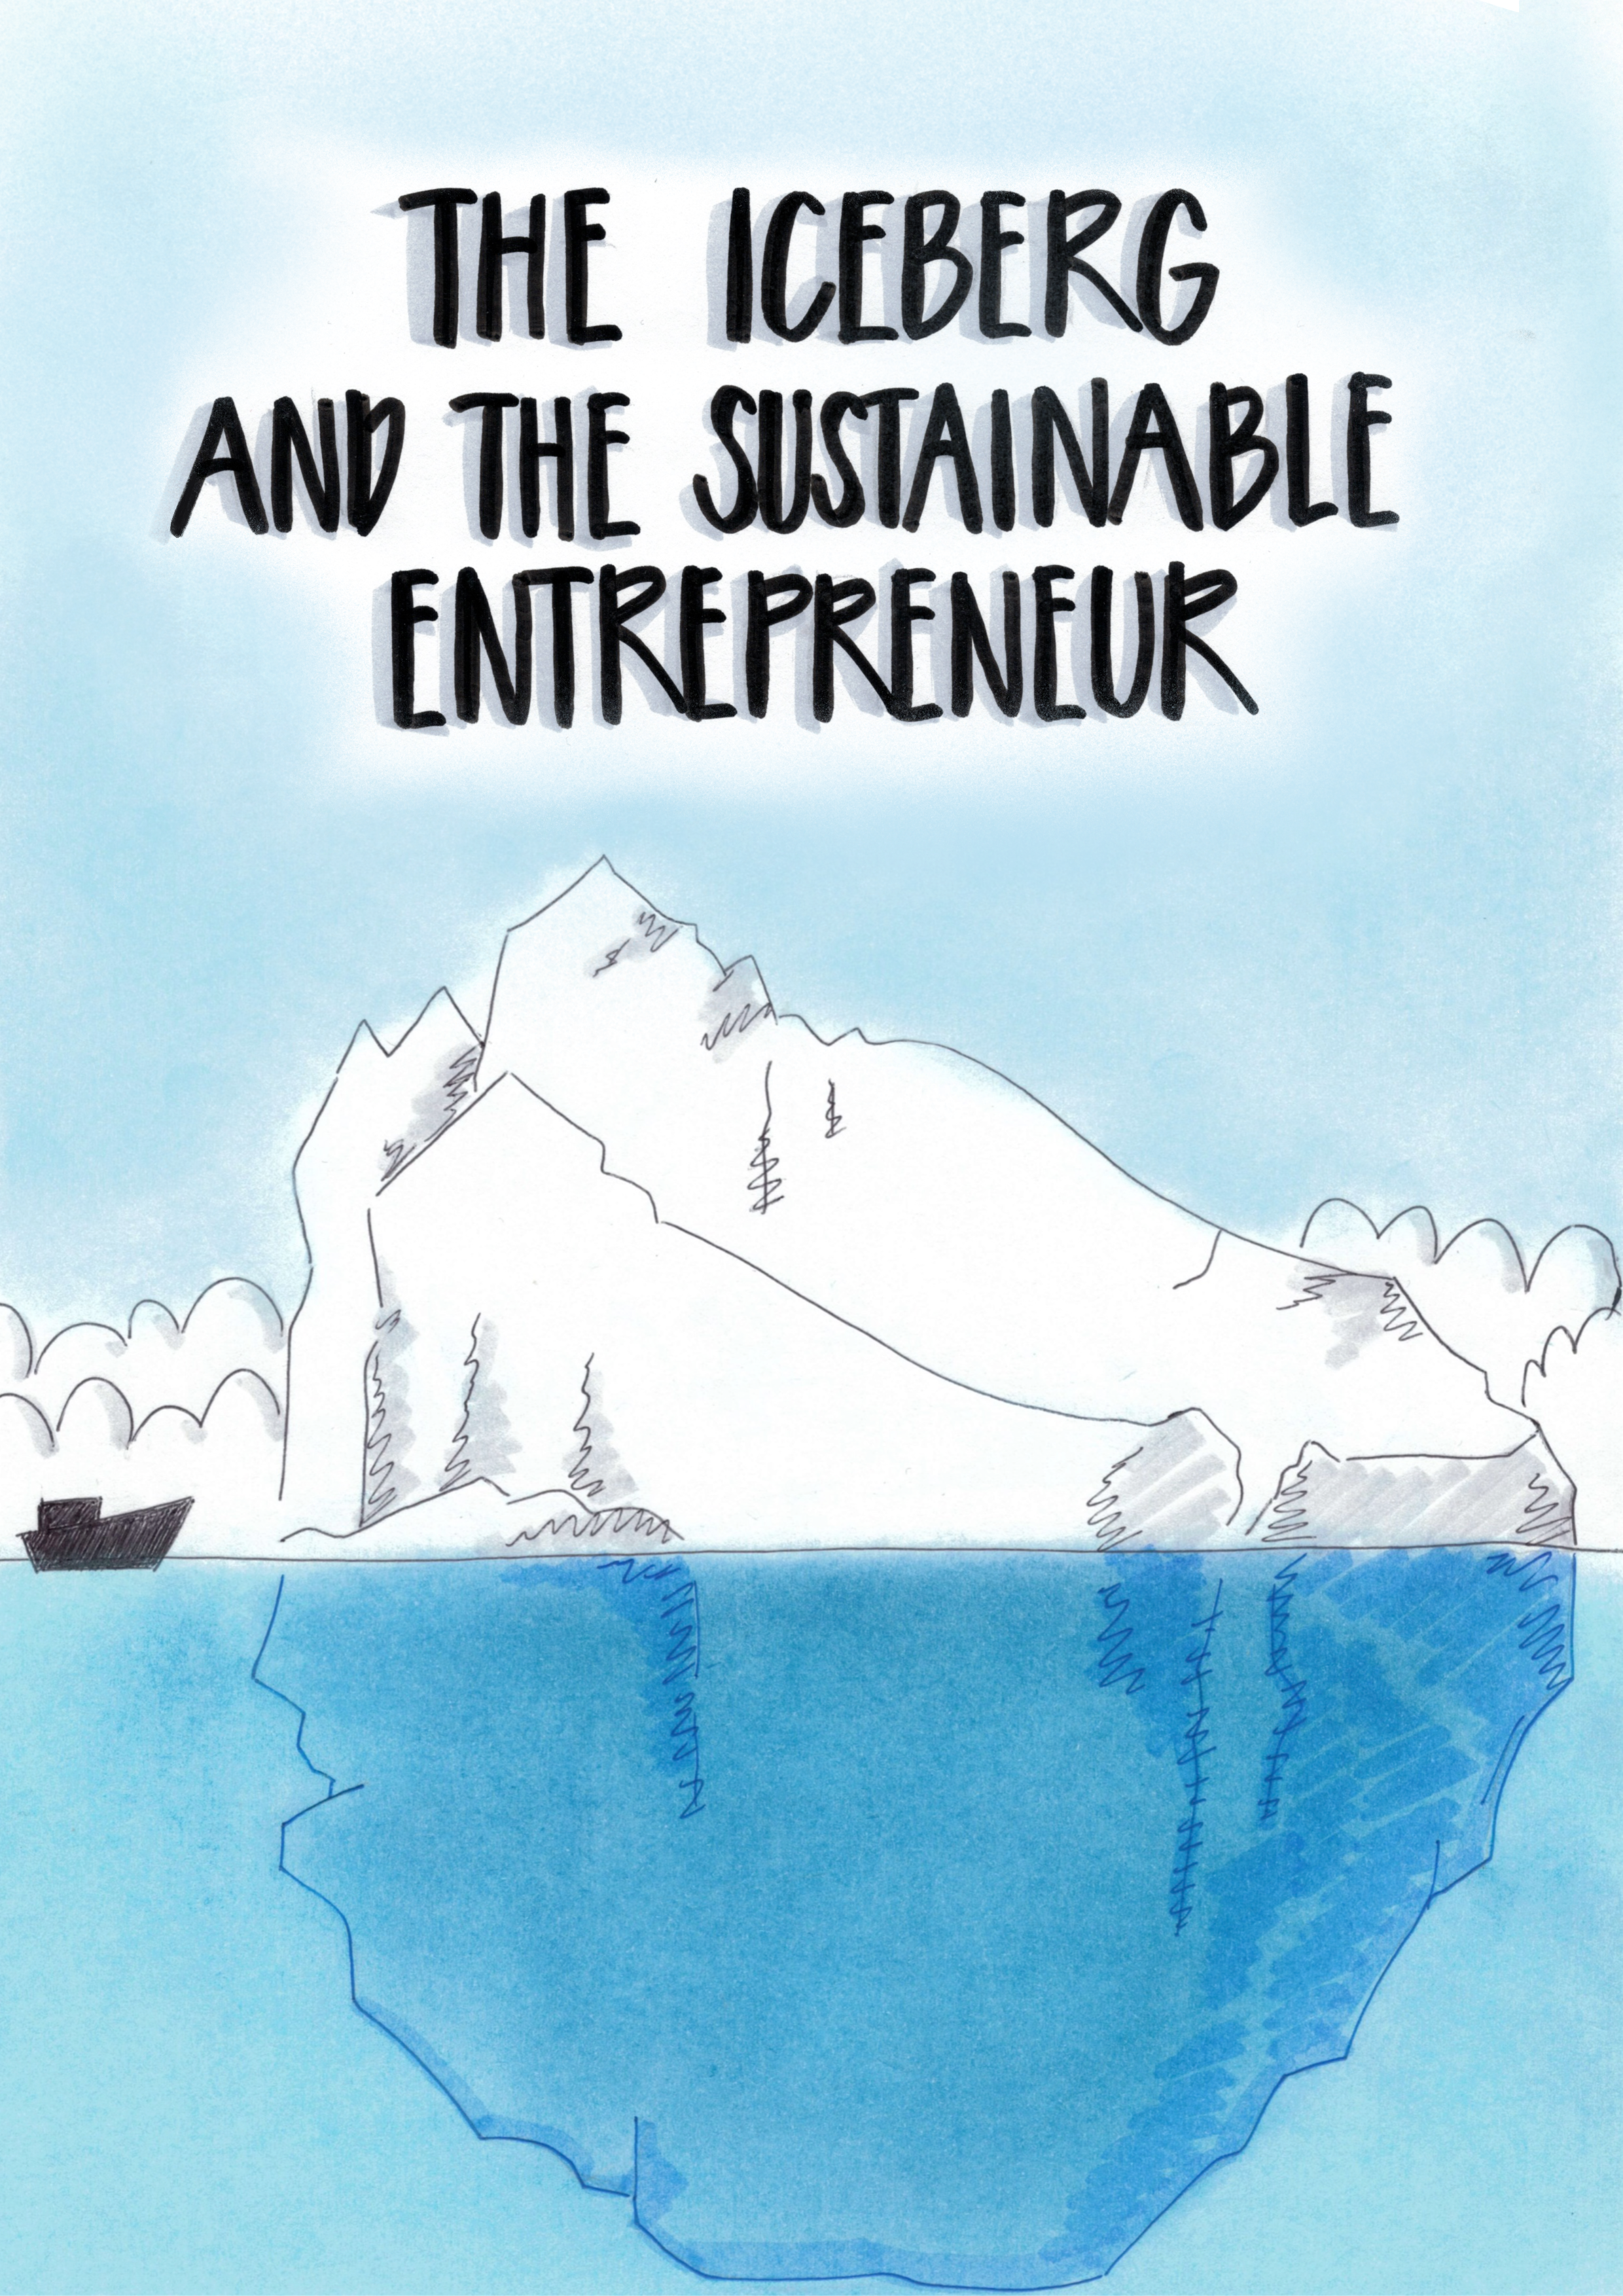 The Iceberg and The Sustainable Entrepreneur